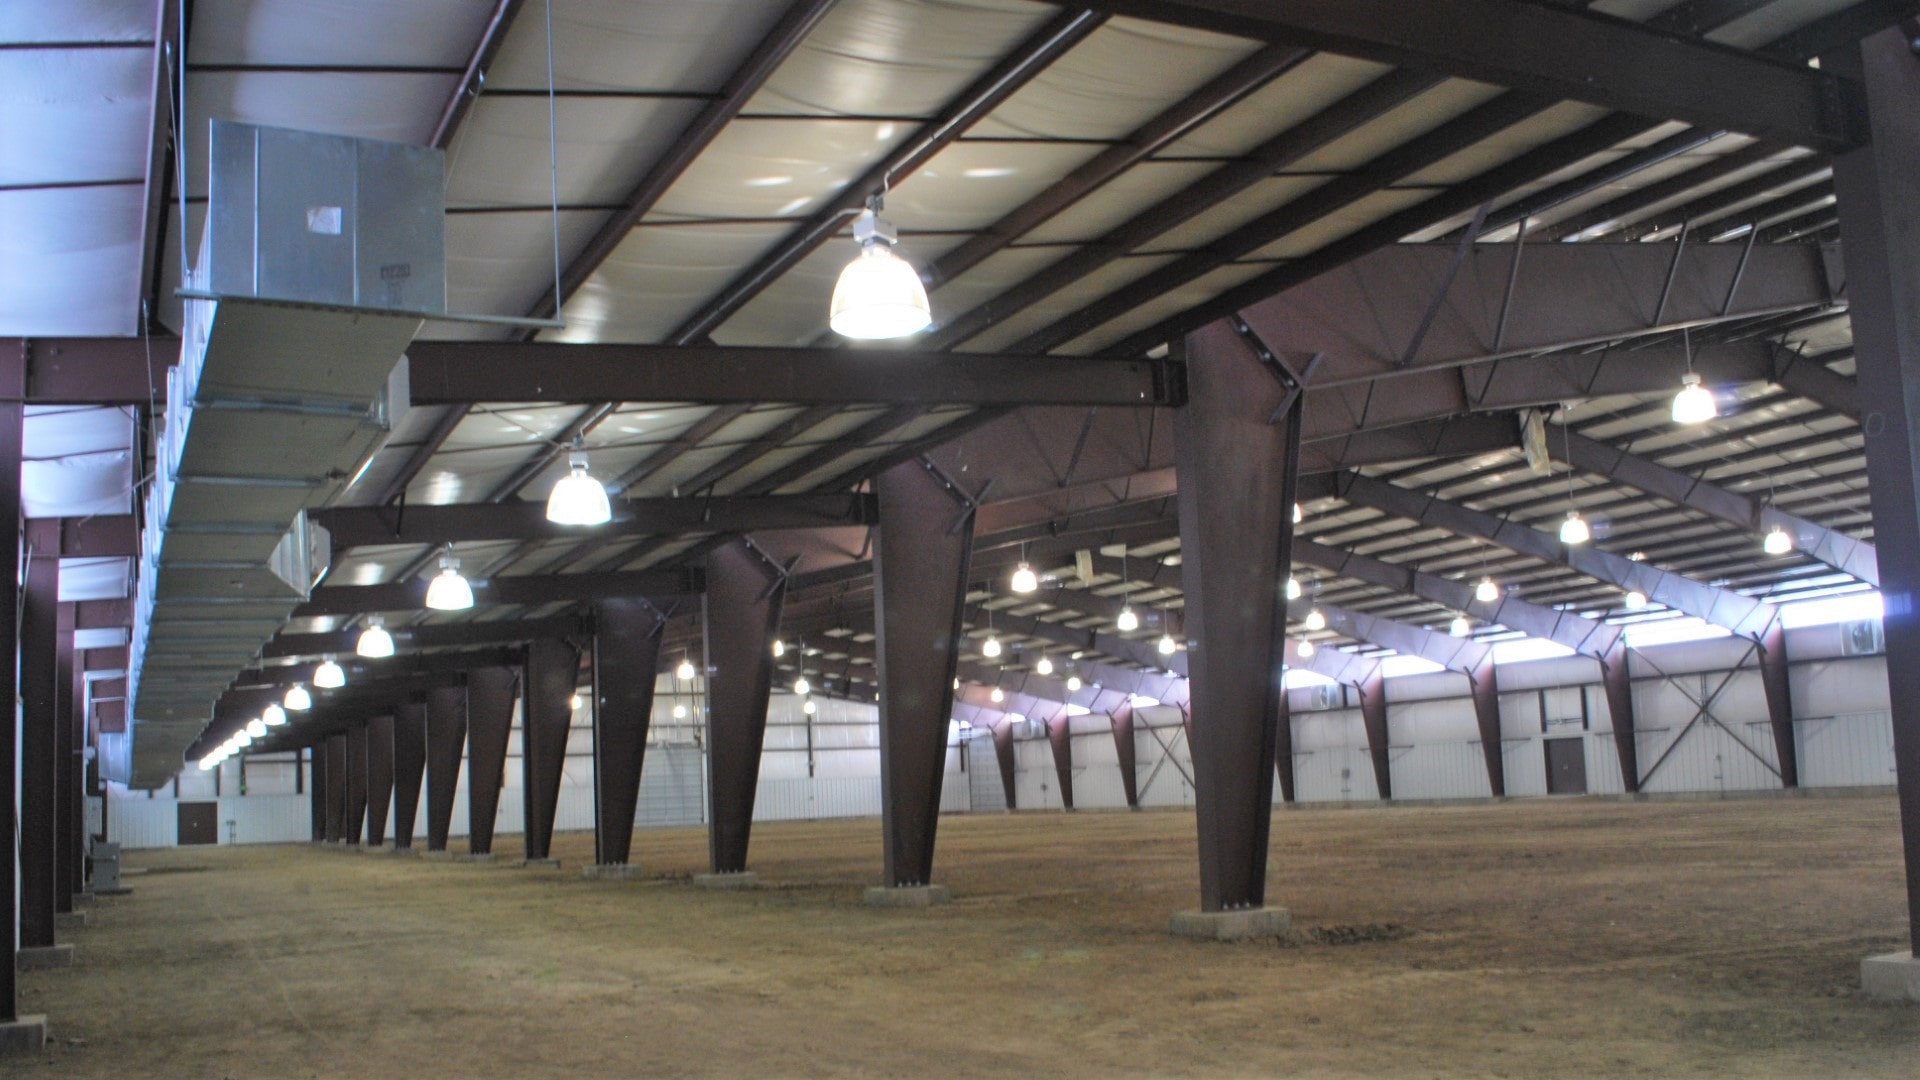 Colorado Fairgrounds steel riding arena indoor view of open leanto frame connecting to main building framelines.